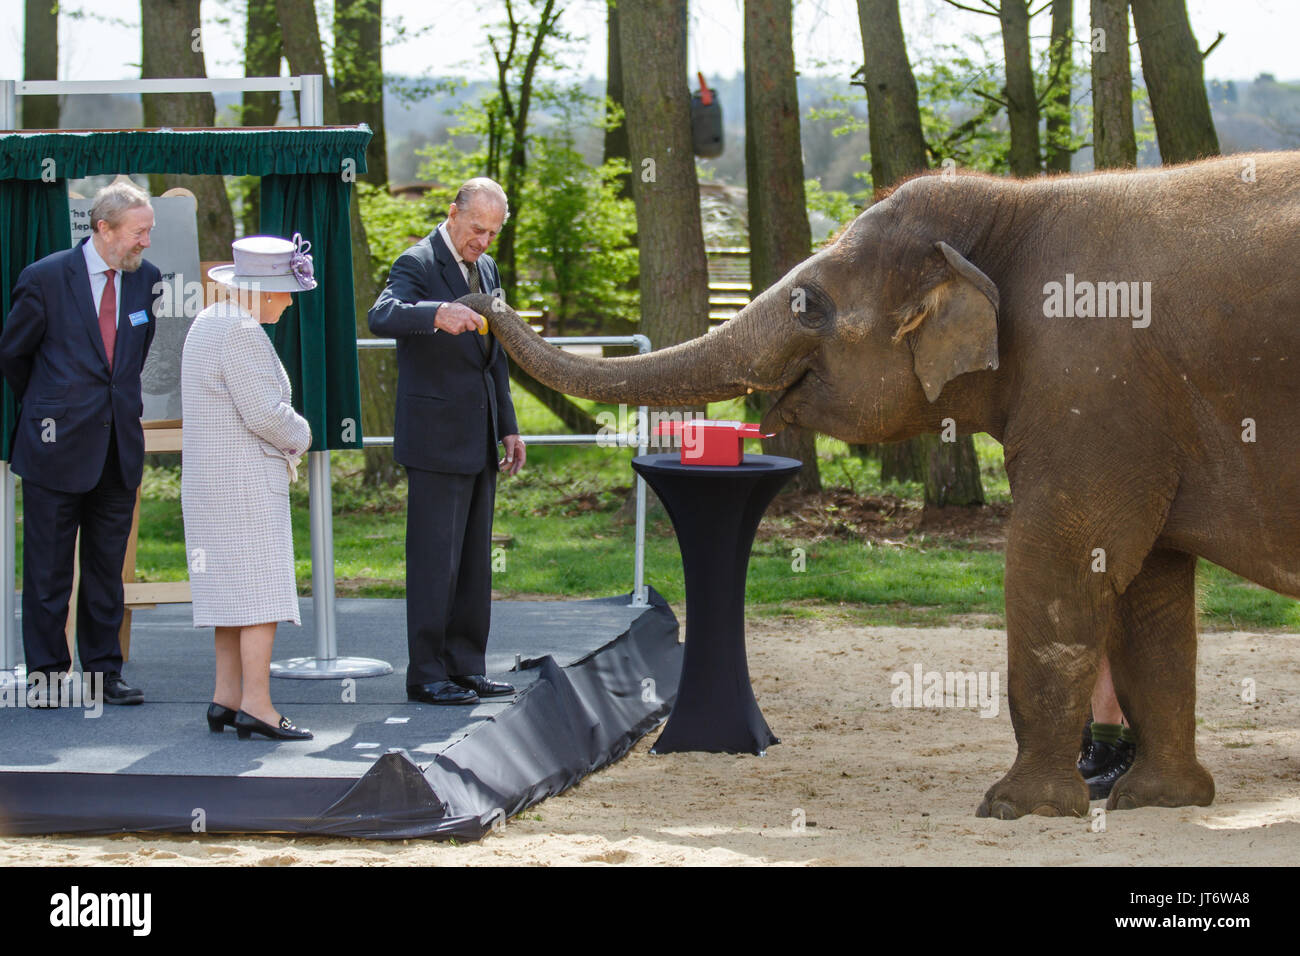 The Queen Helps Feed Elephants at Whipsnade Zoo